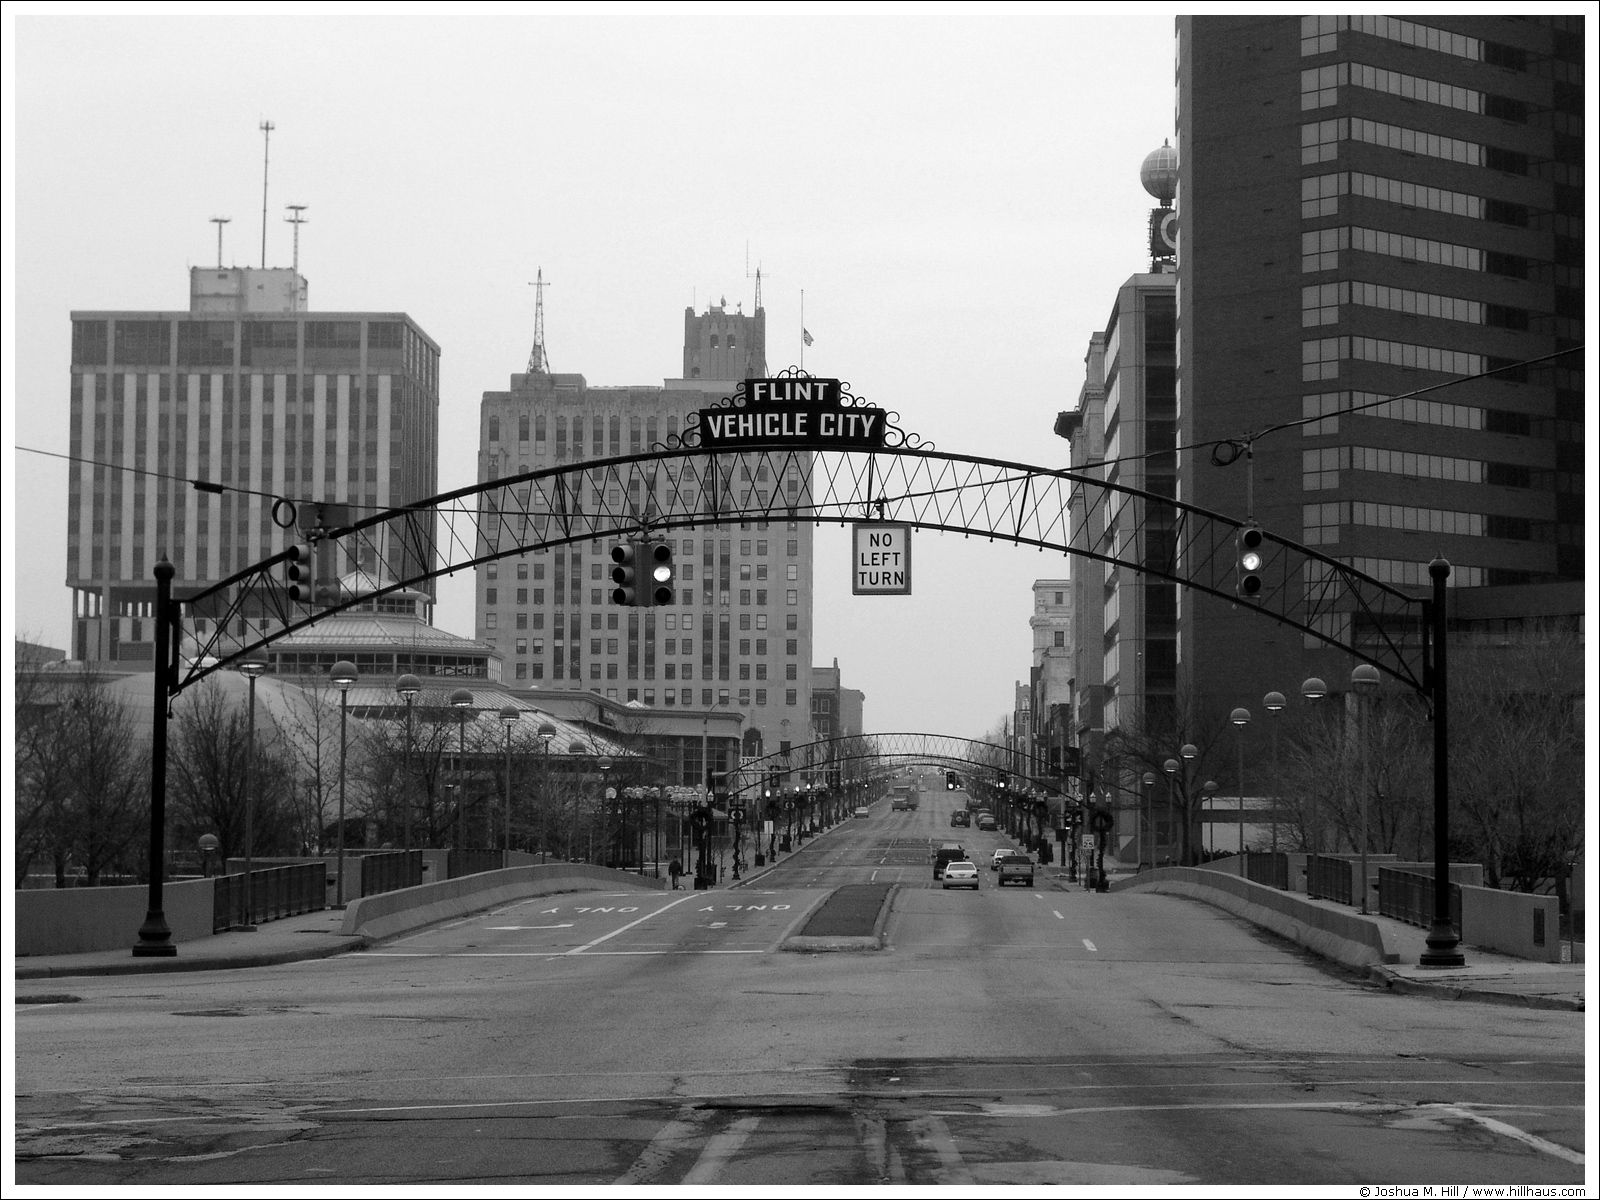 a history of fint michigan in the 1980s We've been ranking america's most dangerous cities for several years, and there's one city that keeps making the top of the list — flint, michigan flint had 66 homicides in 2012, tying a record it hit two years ago forbes has also ranked flint as one of most dangerous places for women the most.